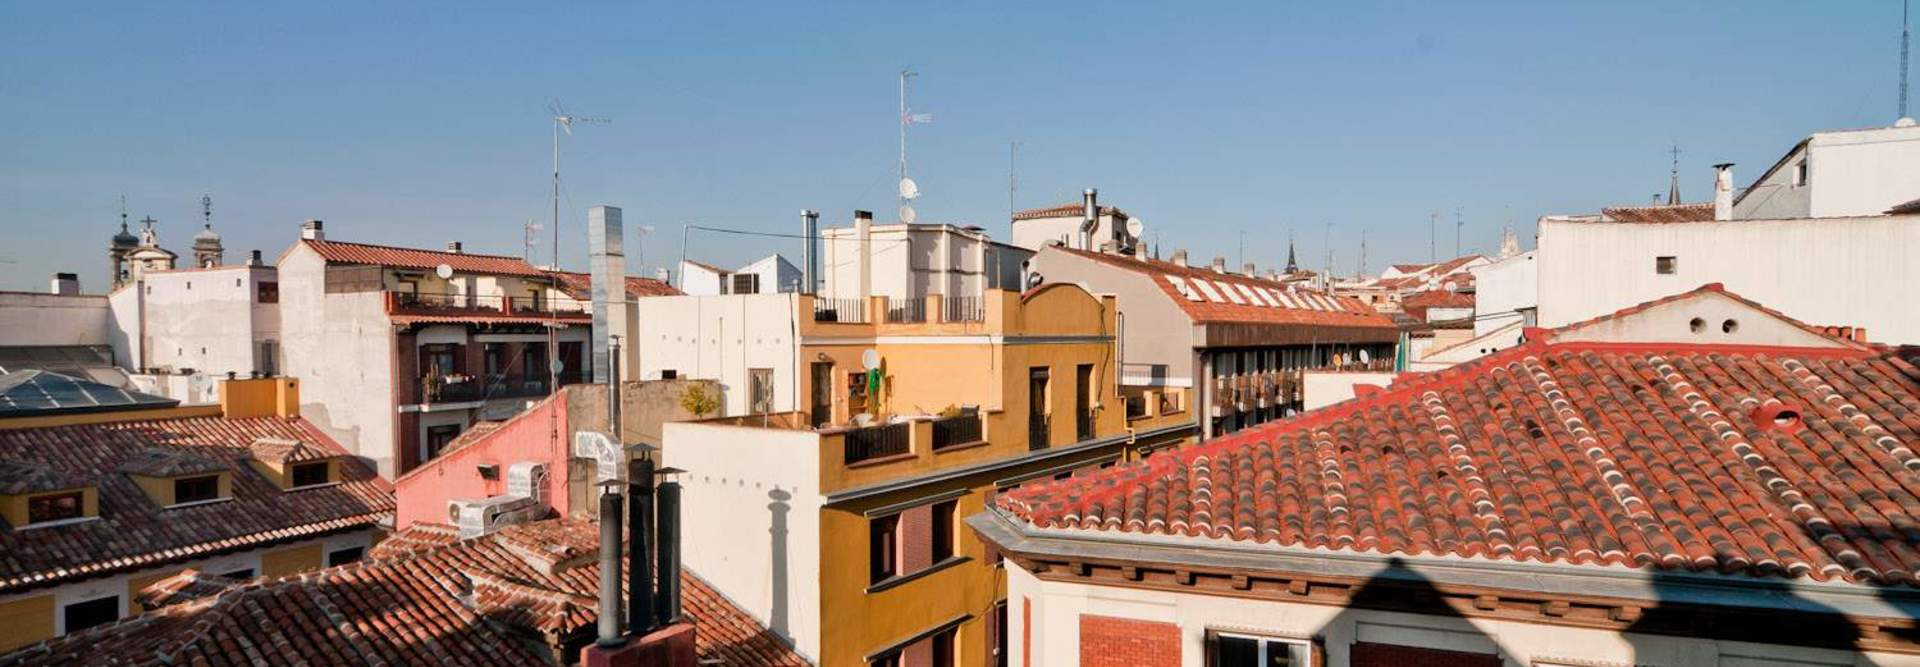 Home alquiler apartamento madrid centro mad4rent  29